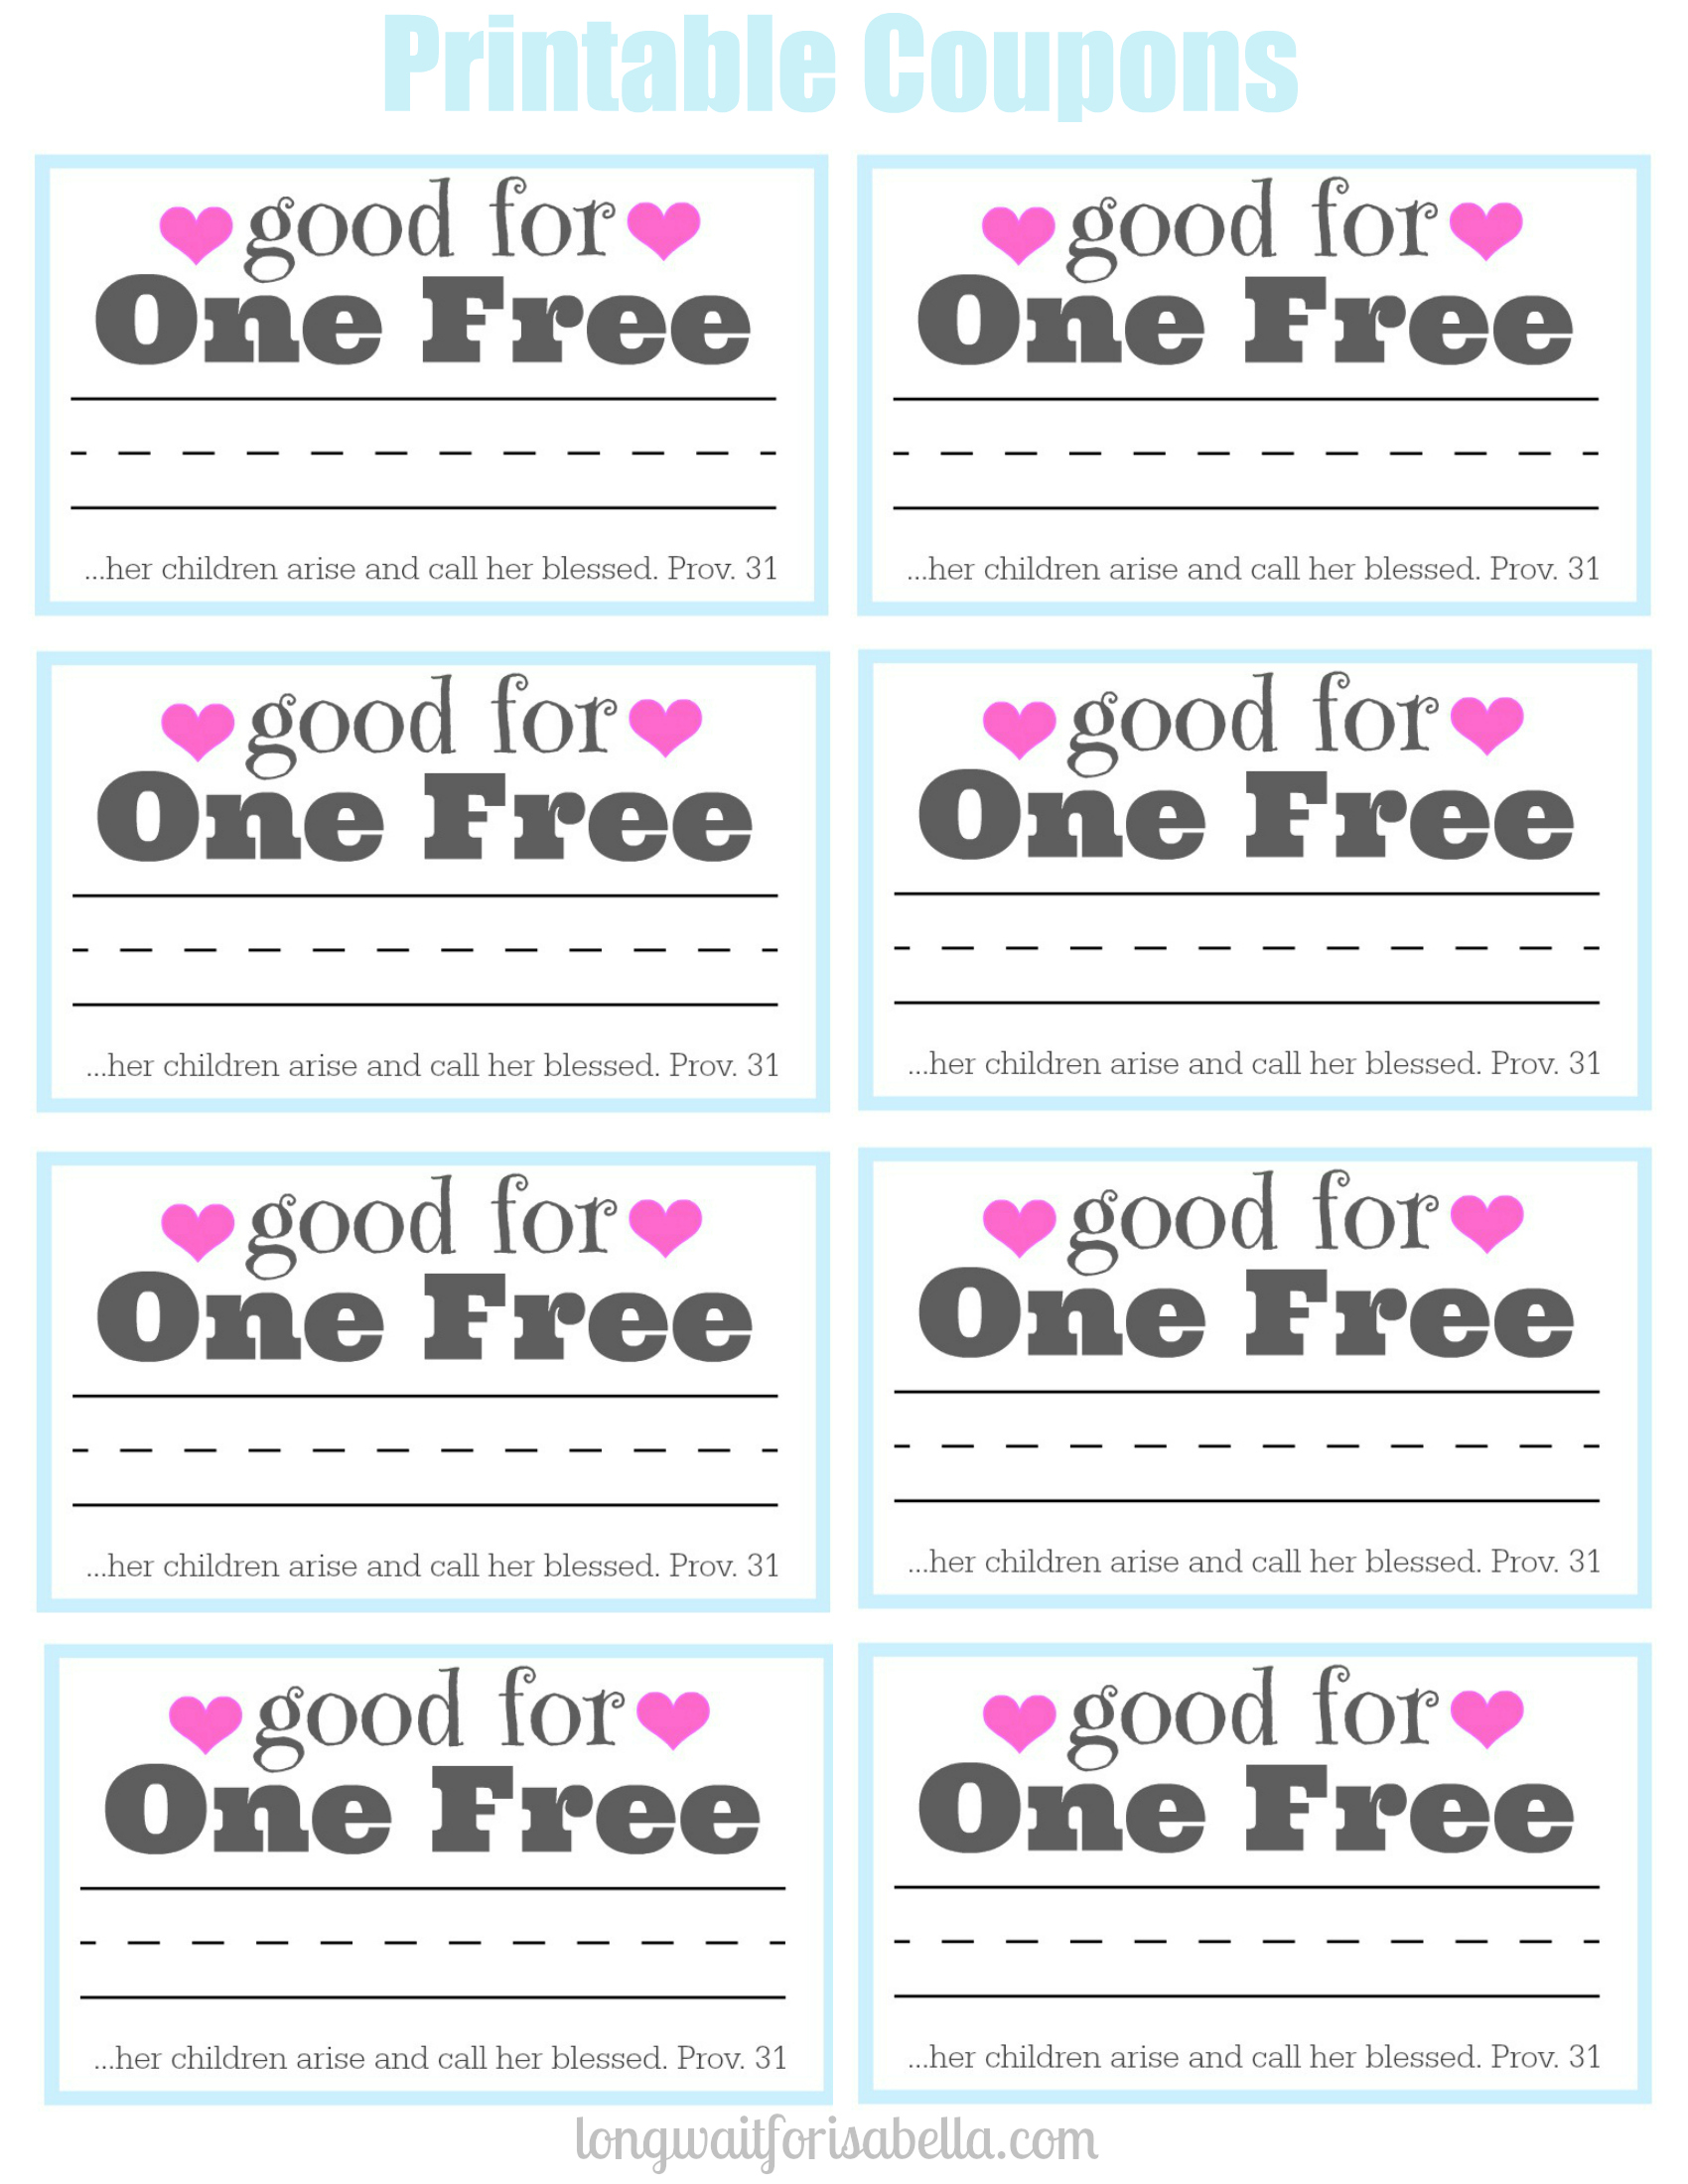 Are you looking for an inexpensive gift this year? Check out how you can make these adorable coupon booklets for your kids. Some examples are Ice Cream for Breakfast, Control of .